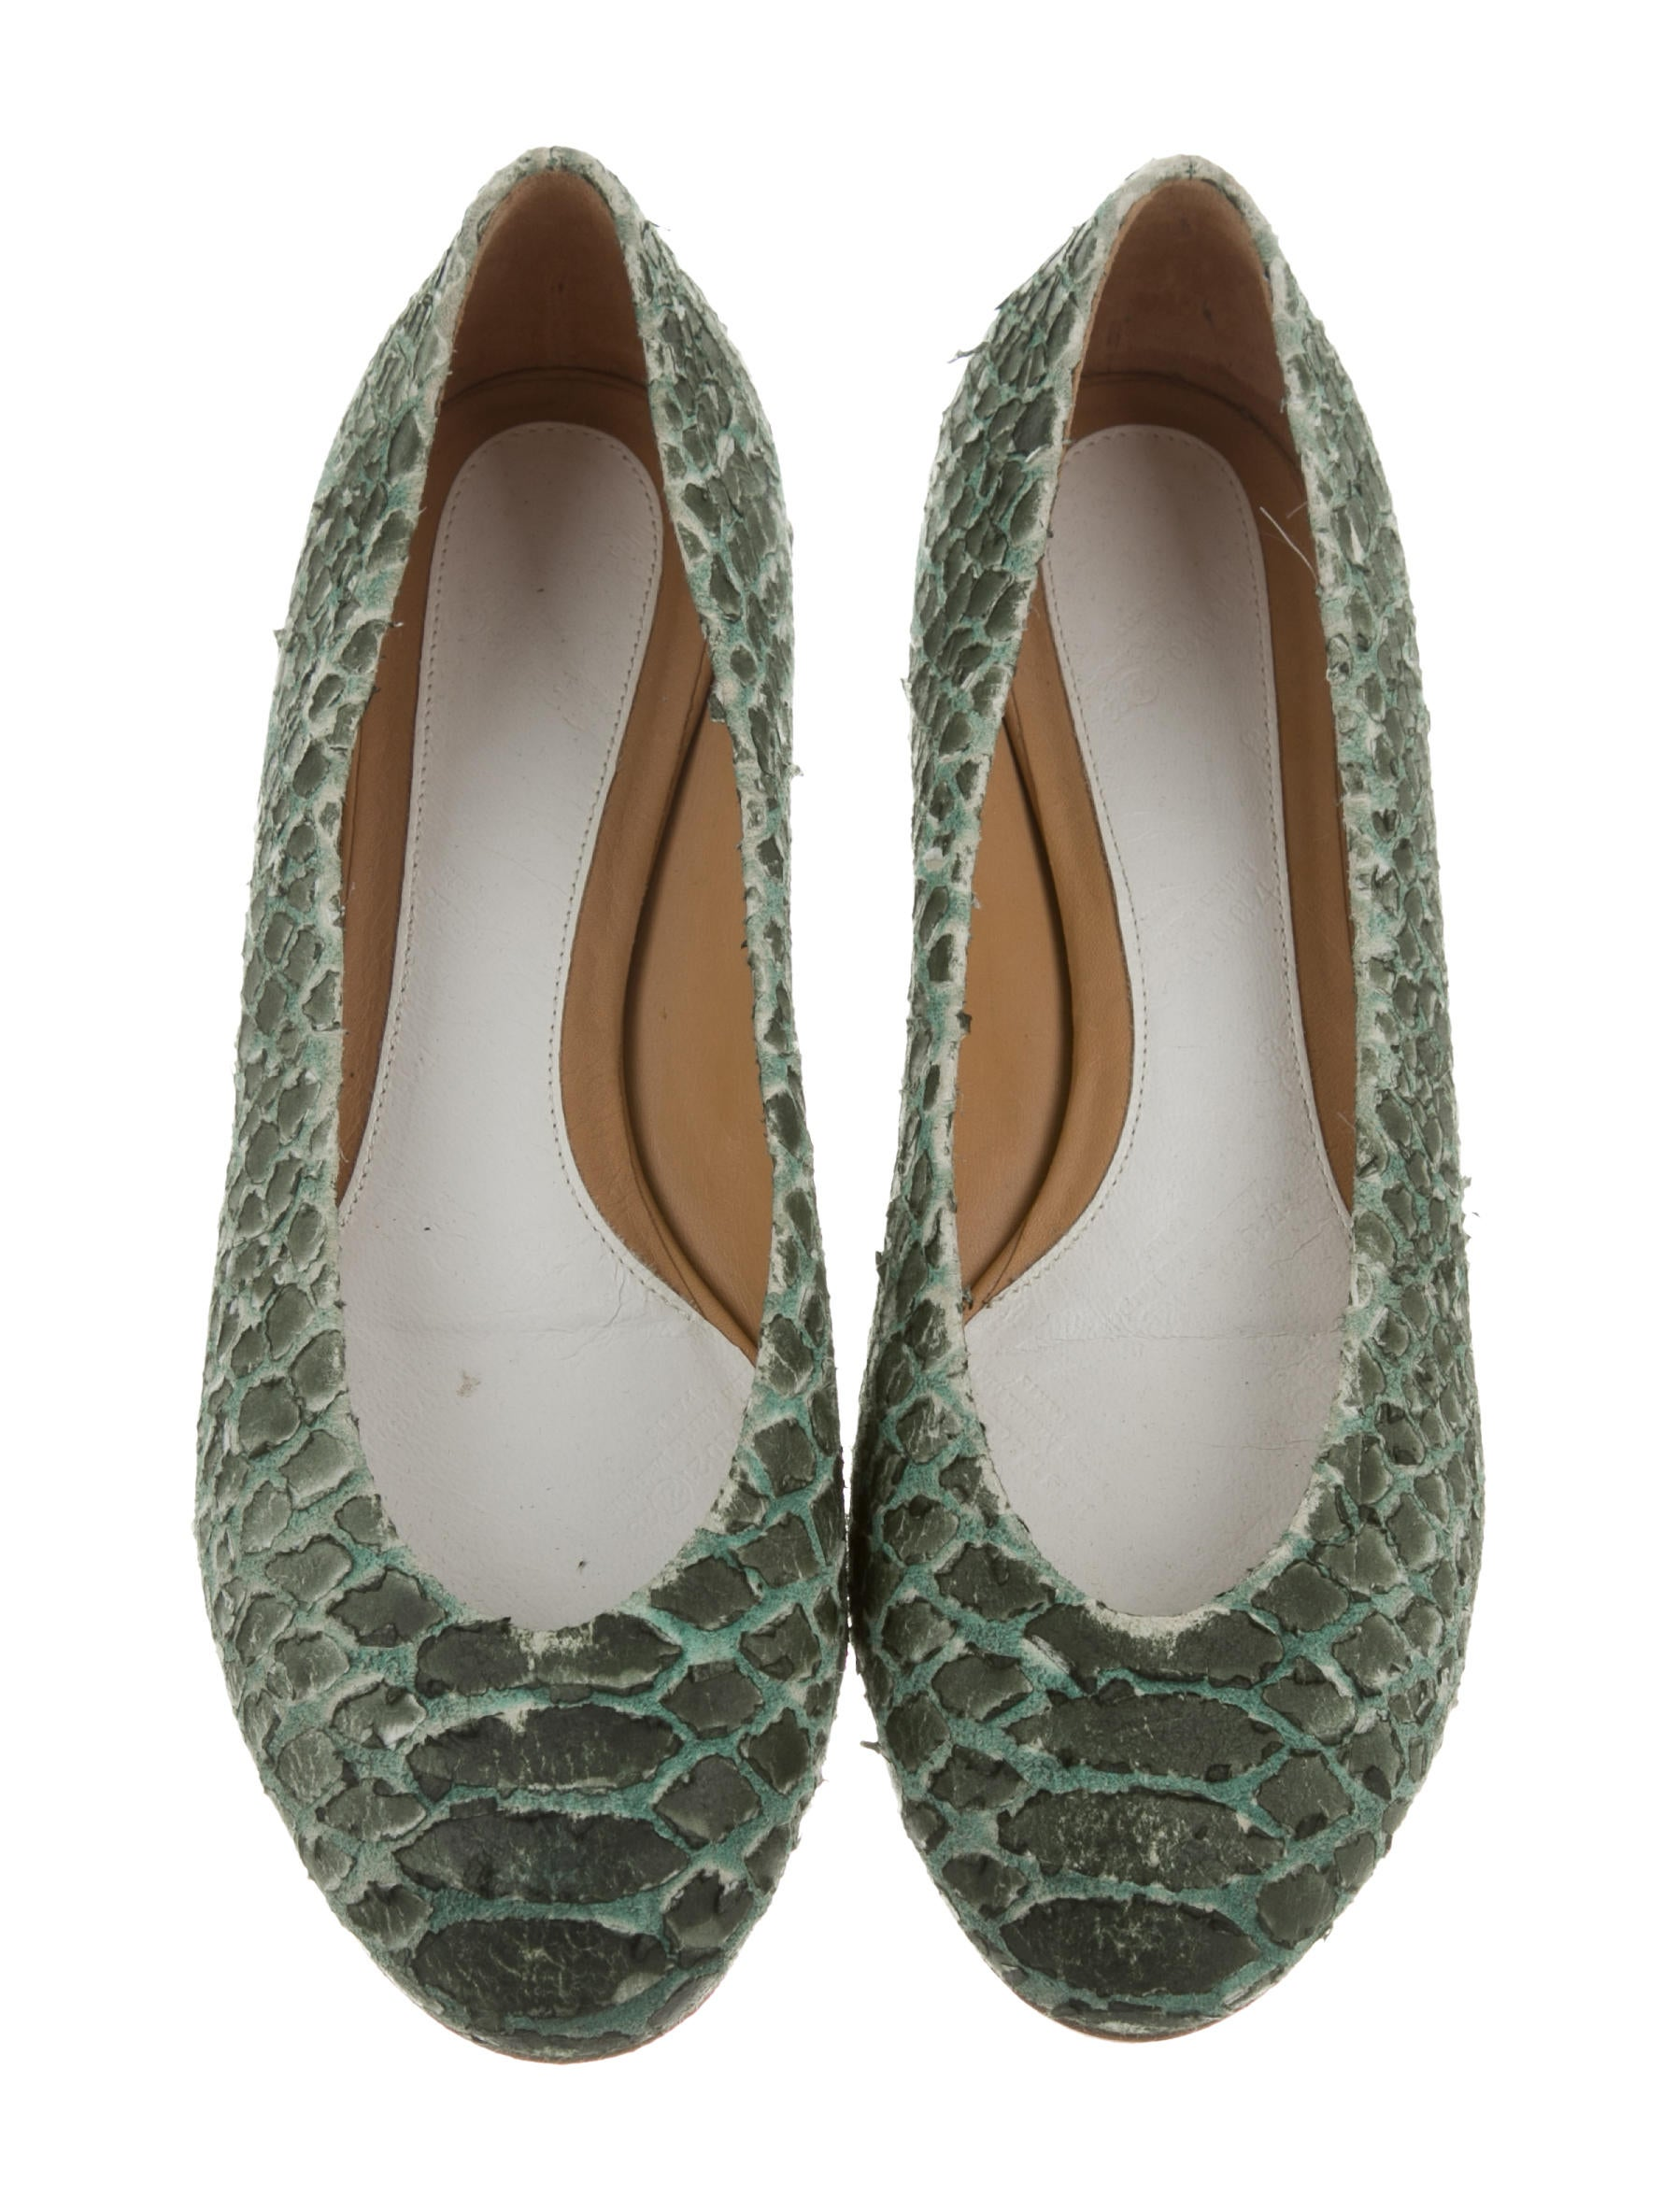 Maison Margiela Textured Round-Toe Flats fake cheap price with paypal cheap price sale reliable discount really cheap sale great deals pGDR0